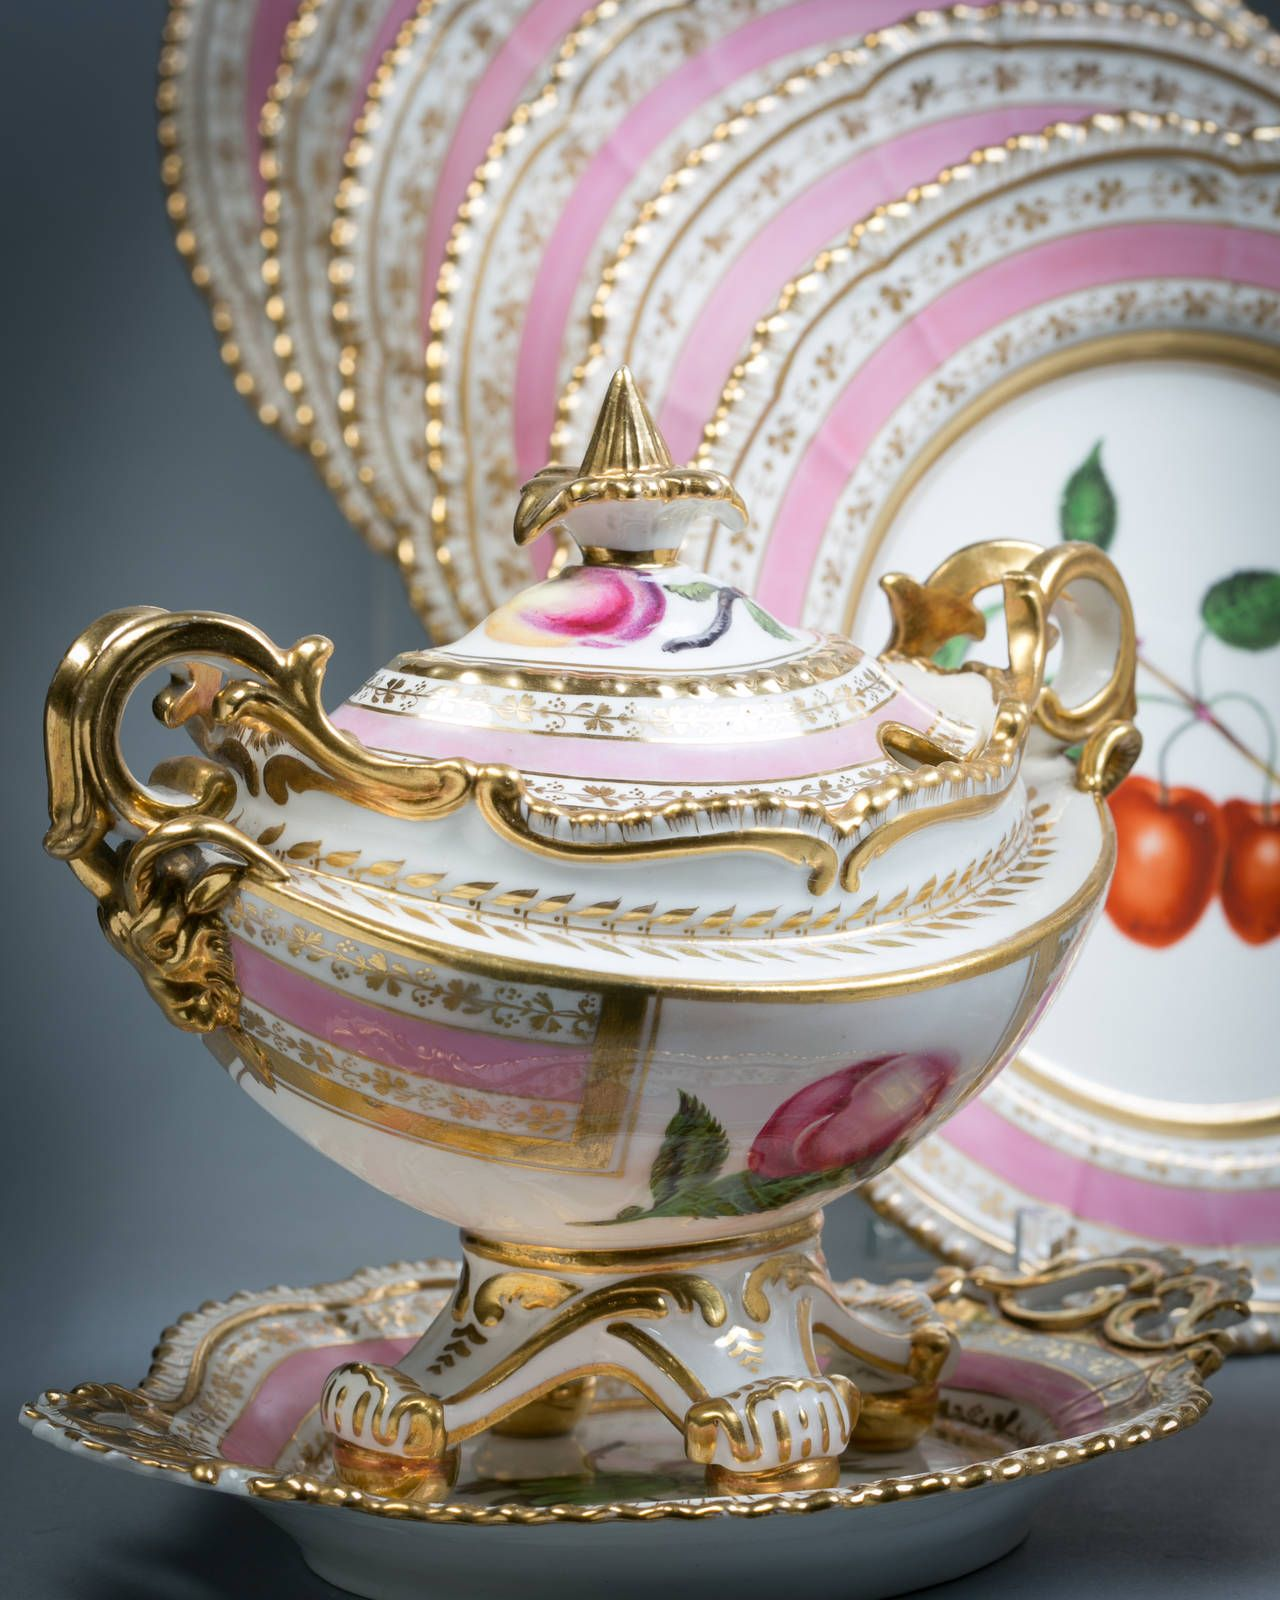 English Porcelain Fruit Service, Chamberlain Worcester, c